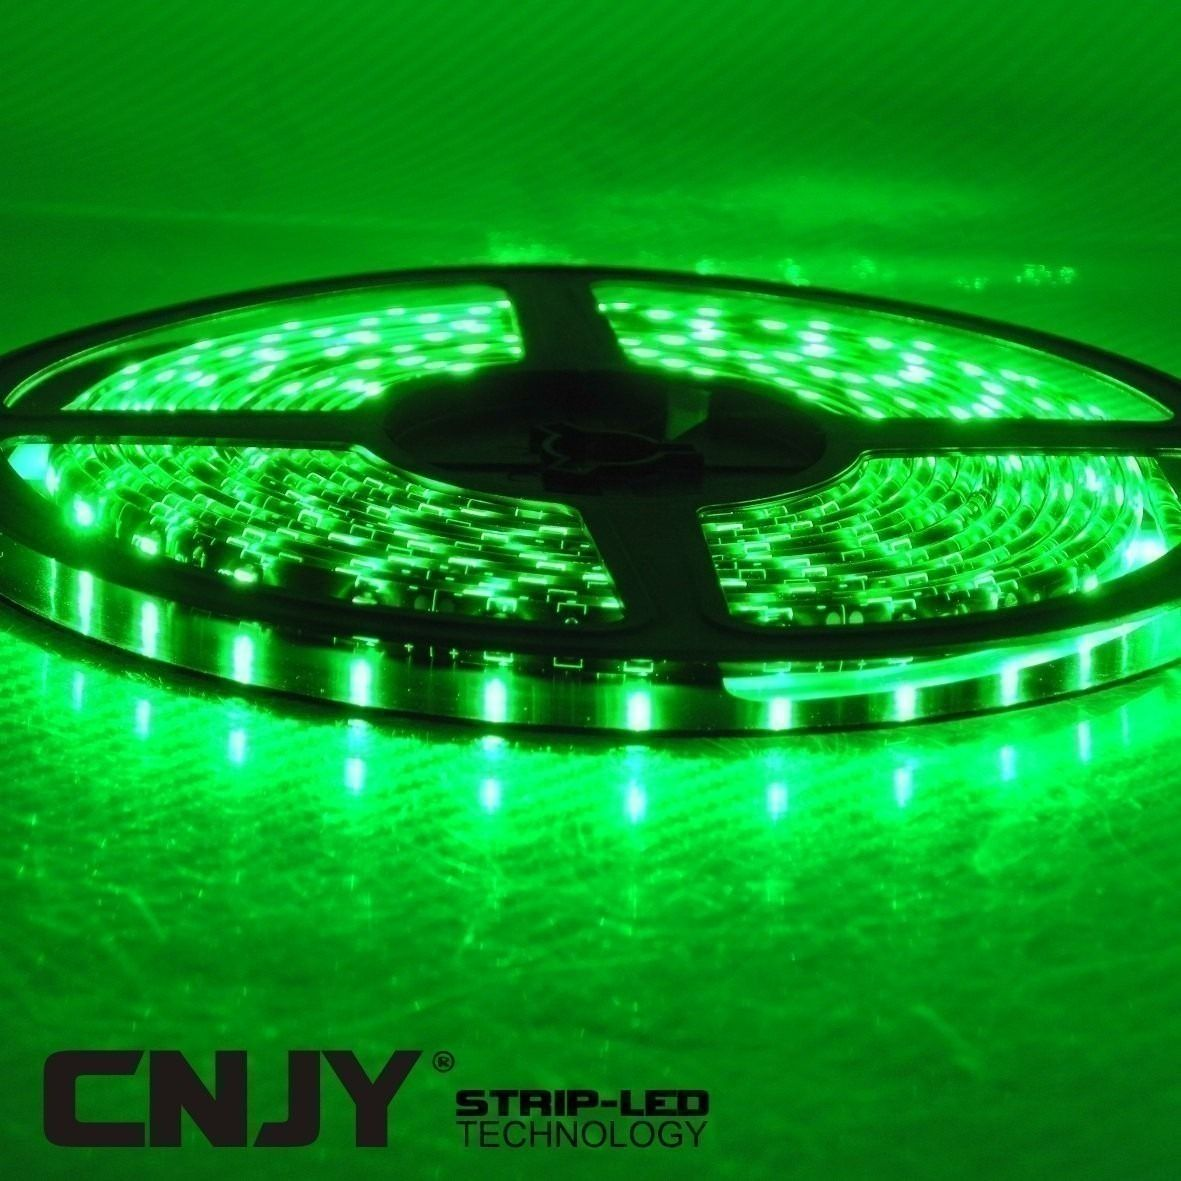 BANDE,LED,FLEXIBLE,STRIP,RUBAN,ROULEAU, DECORATION,12V,BAR,VERT,LED,DEL,SMD,ETANCHE,AQUARIUM,TUNING